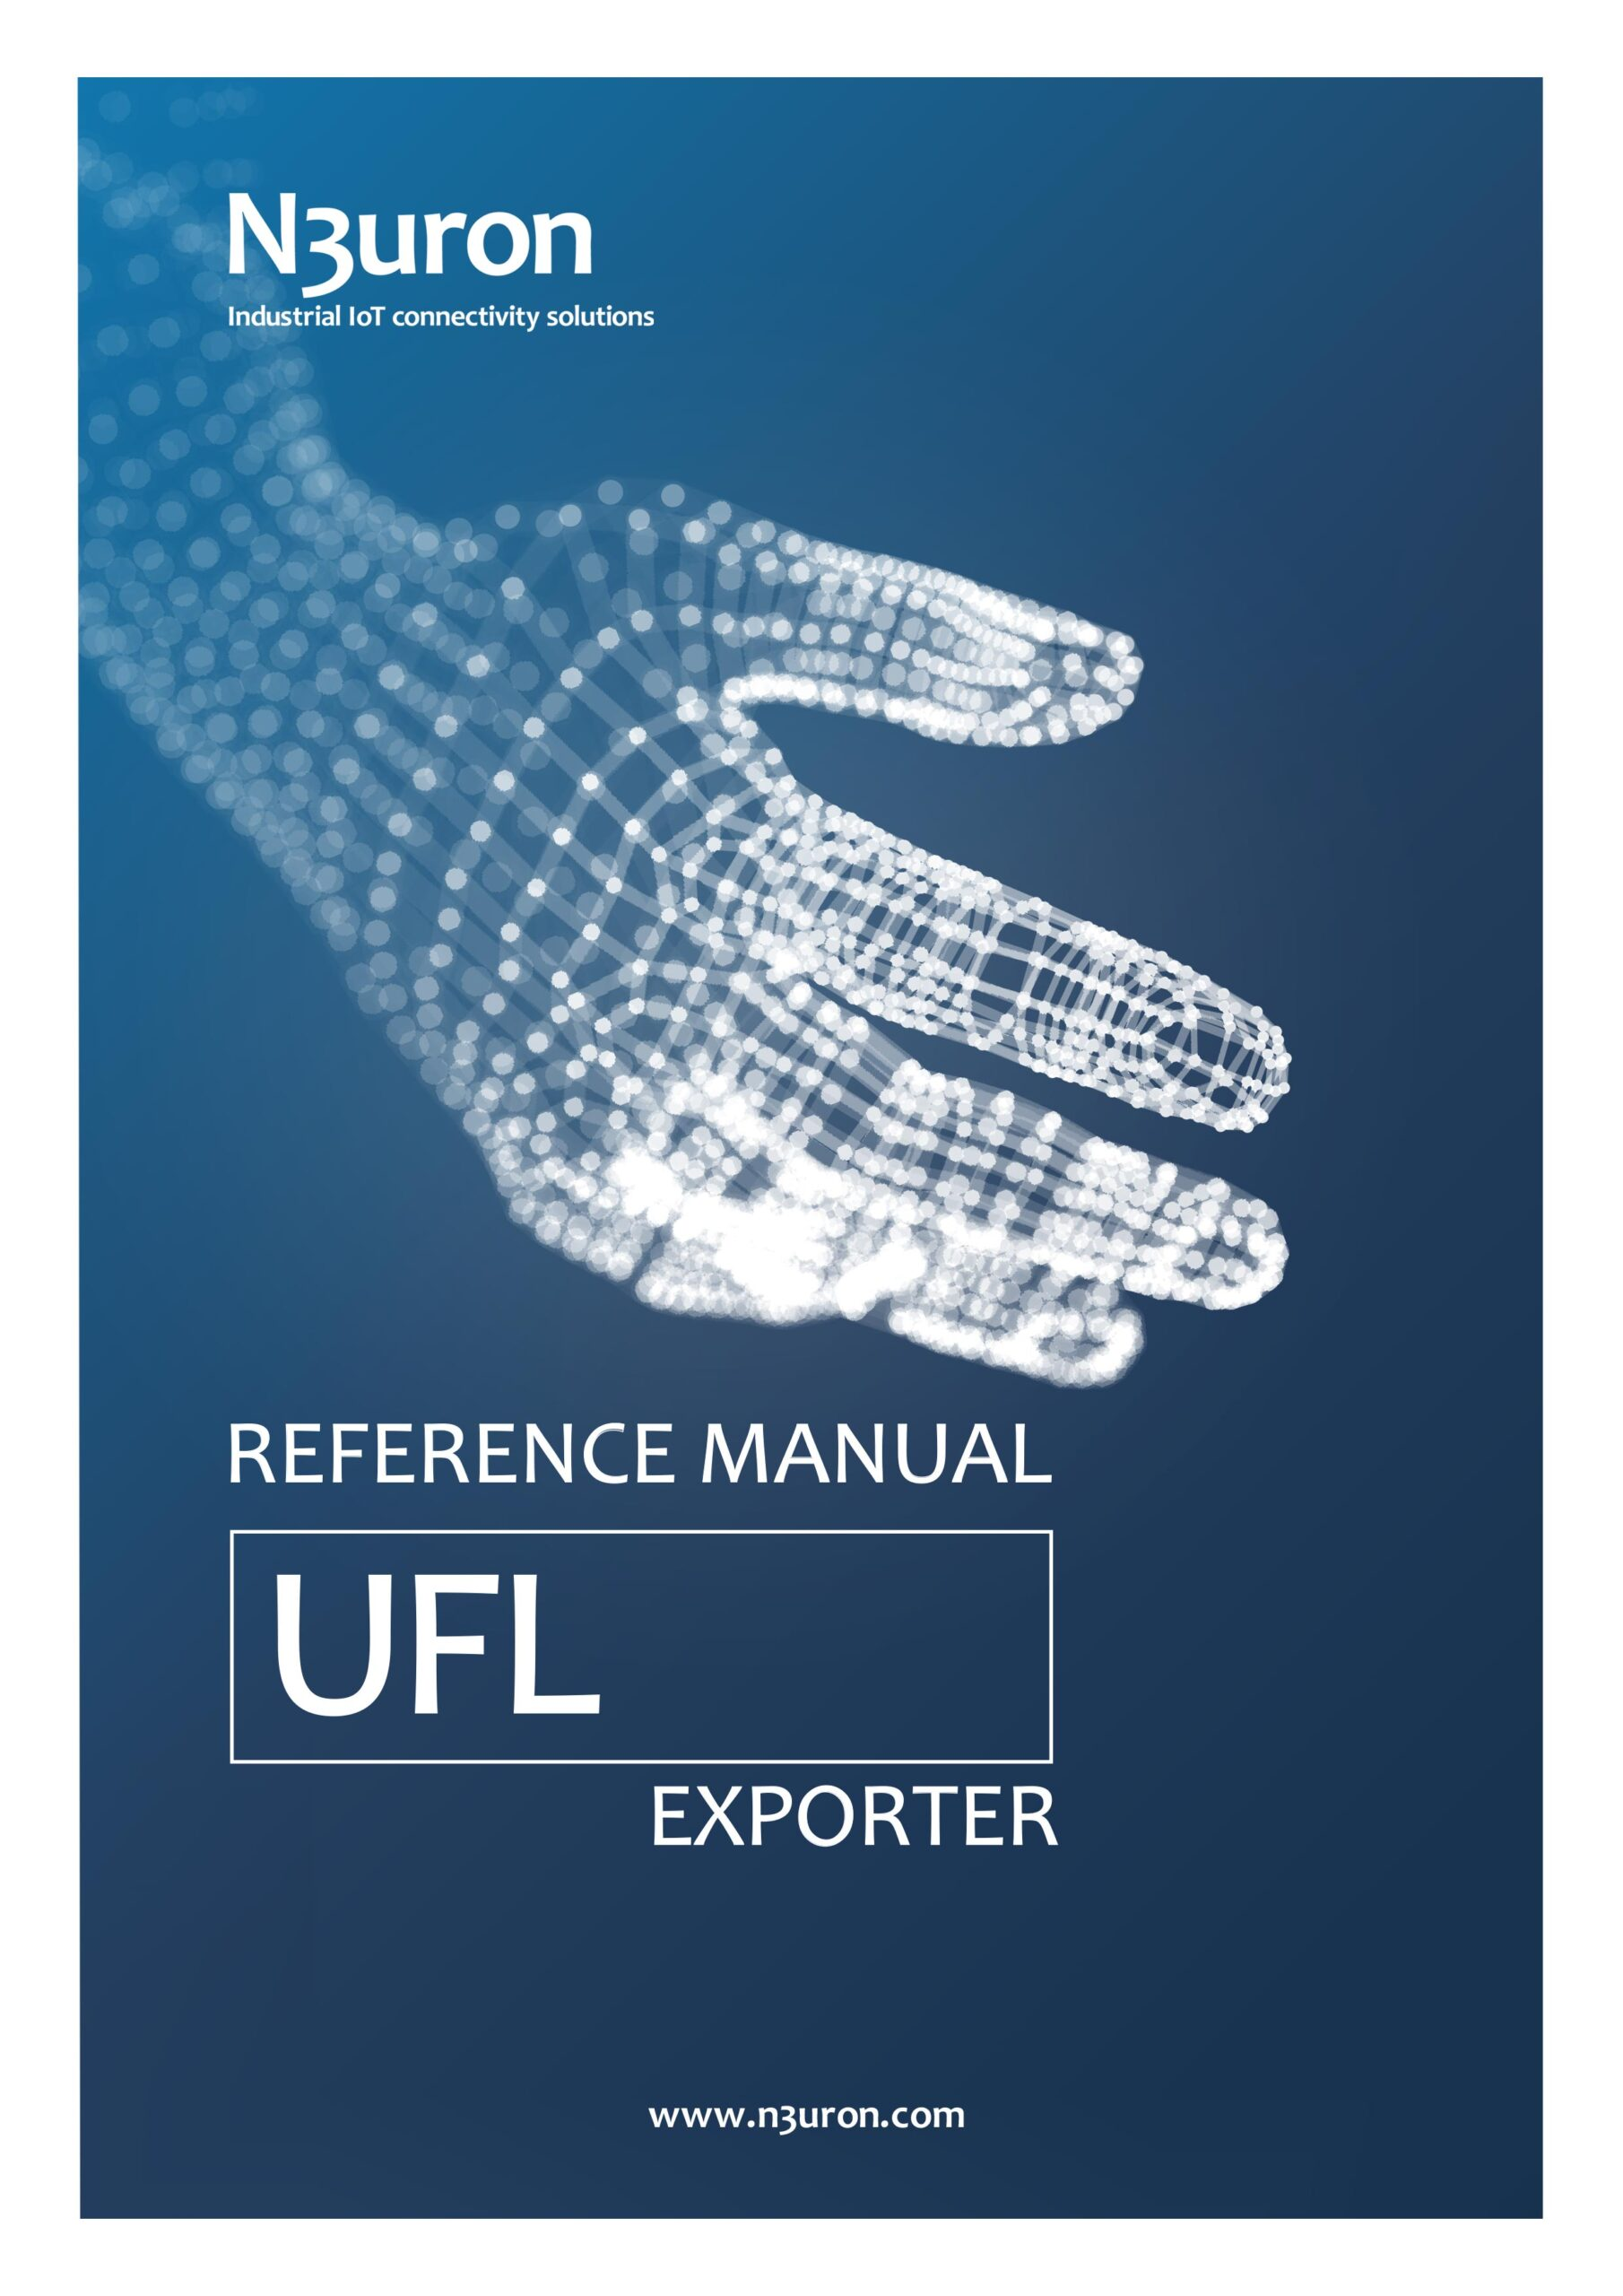 N3uron Industrial IoT communication platform UFL Exporter Manual Cover.